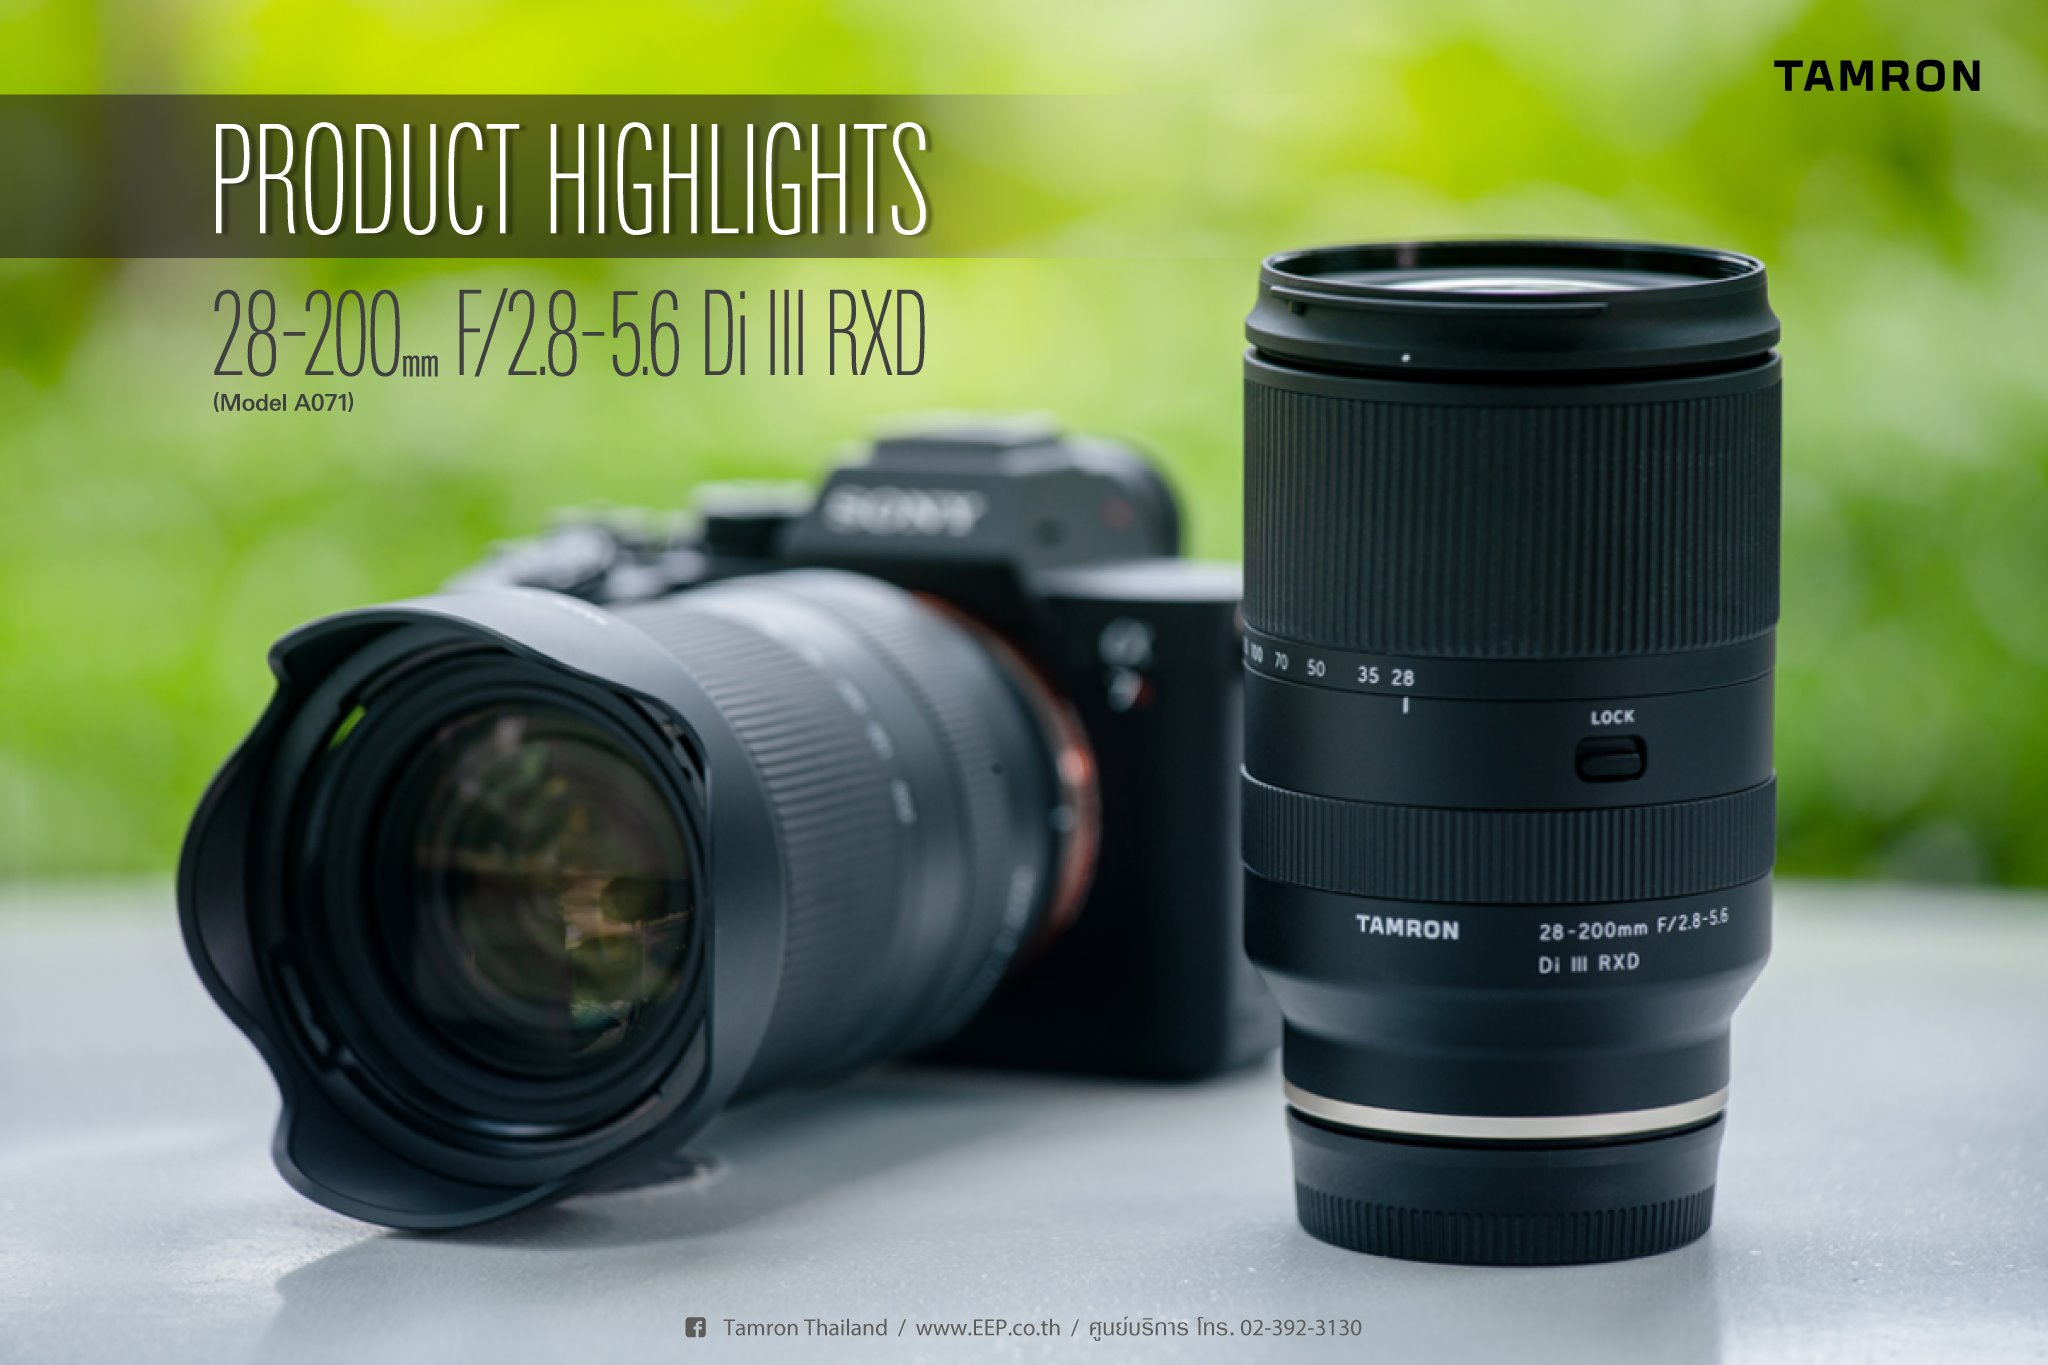 Product Highlight : TAMRON 28-200mm F/2.8-5.6 Di III RXD (Model A071)